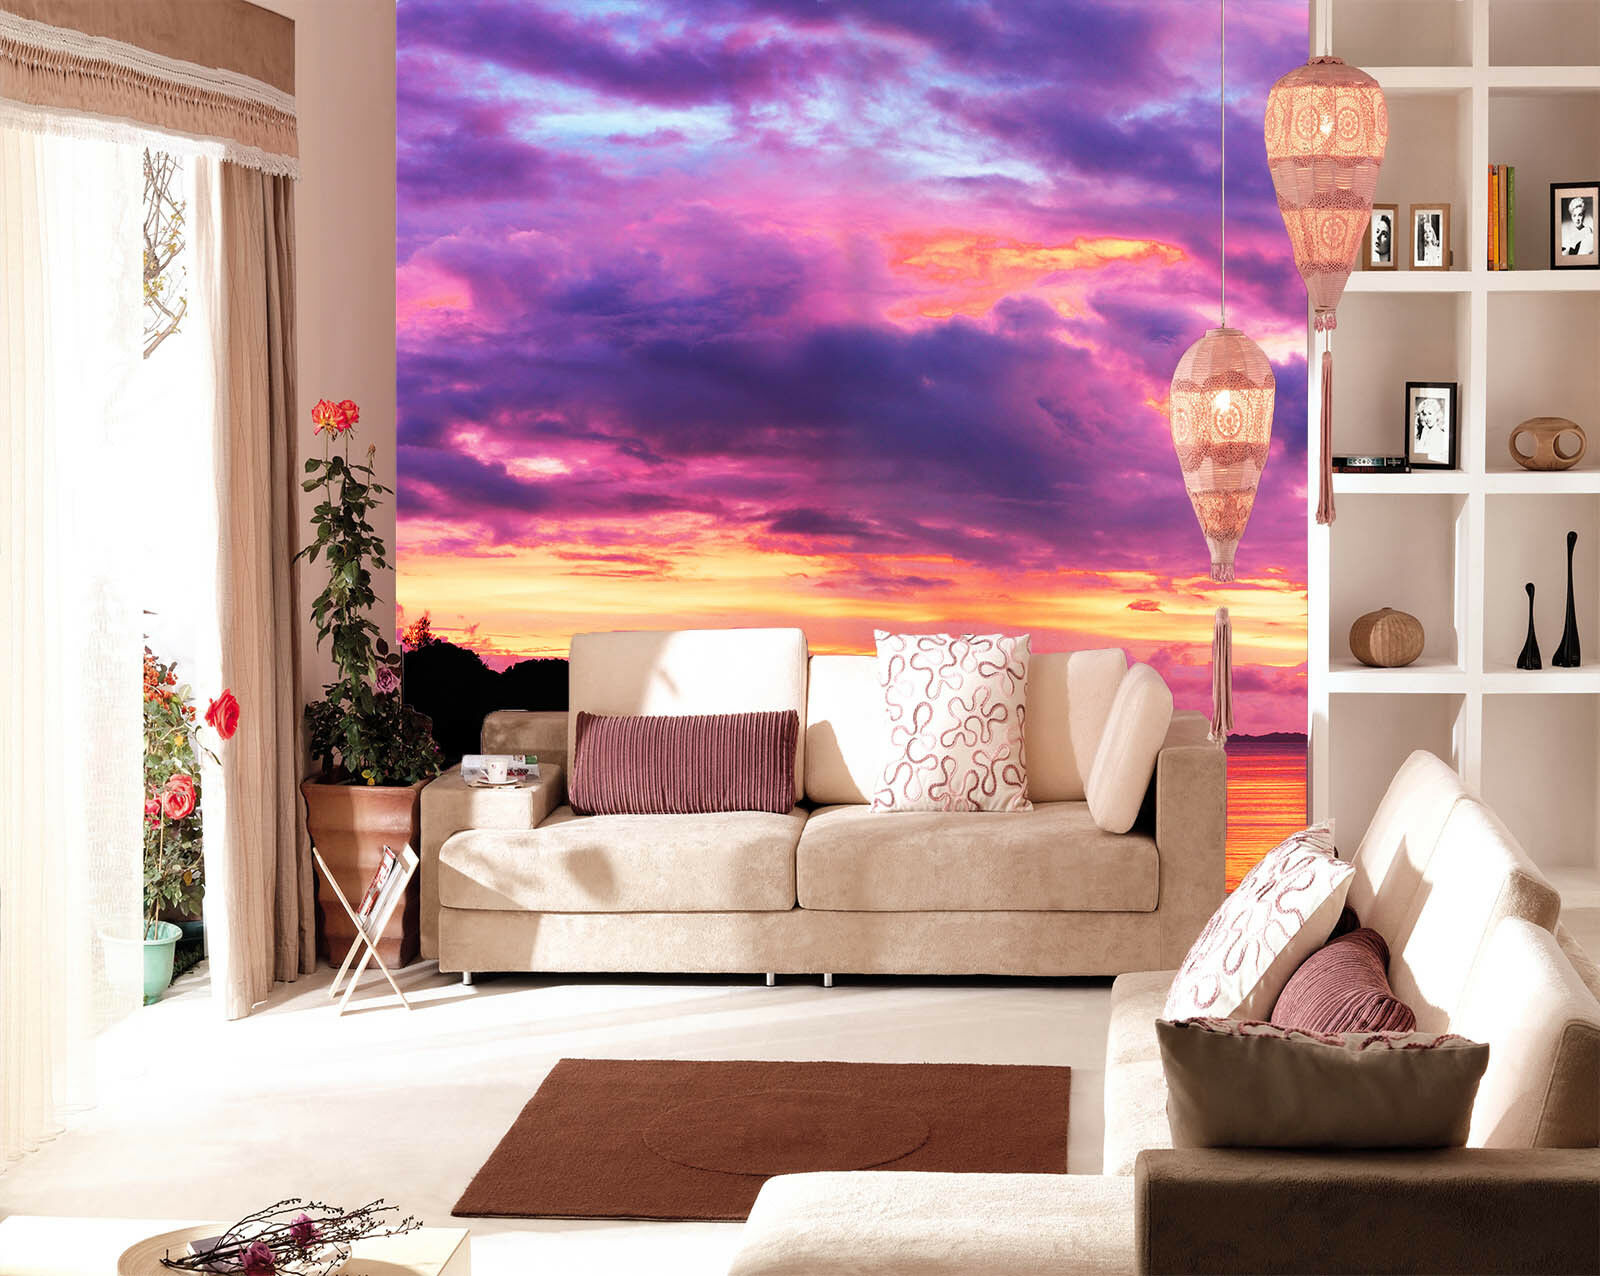 3D Purple Sky Dusk 423 Wall Paper Wall Print Decal Wall Deco Indoor Mural Carly